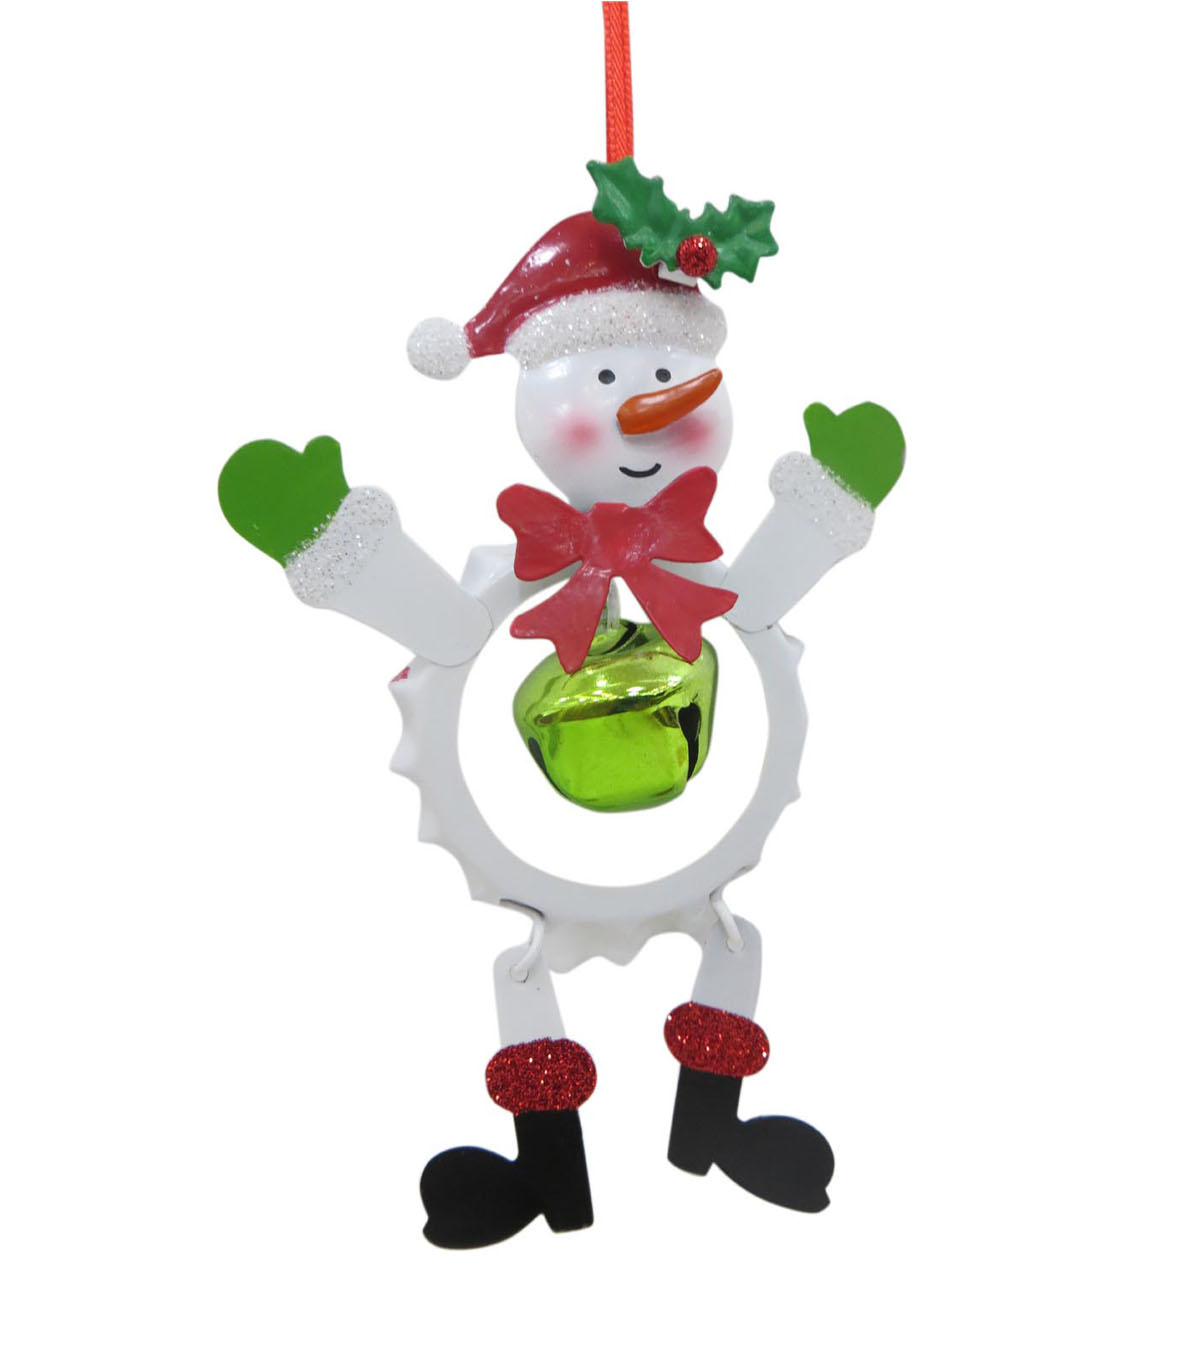 Maker\u0027s Holiday Whimsy Workshop Snowman with Green Jingle Bell Ornament